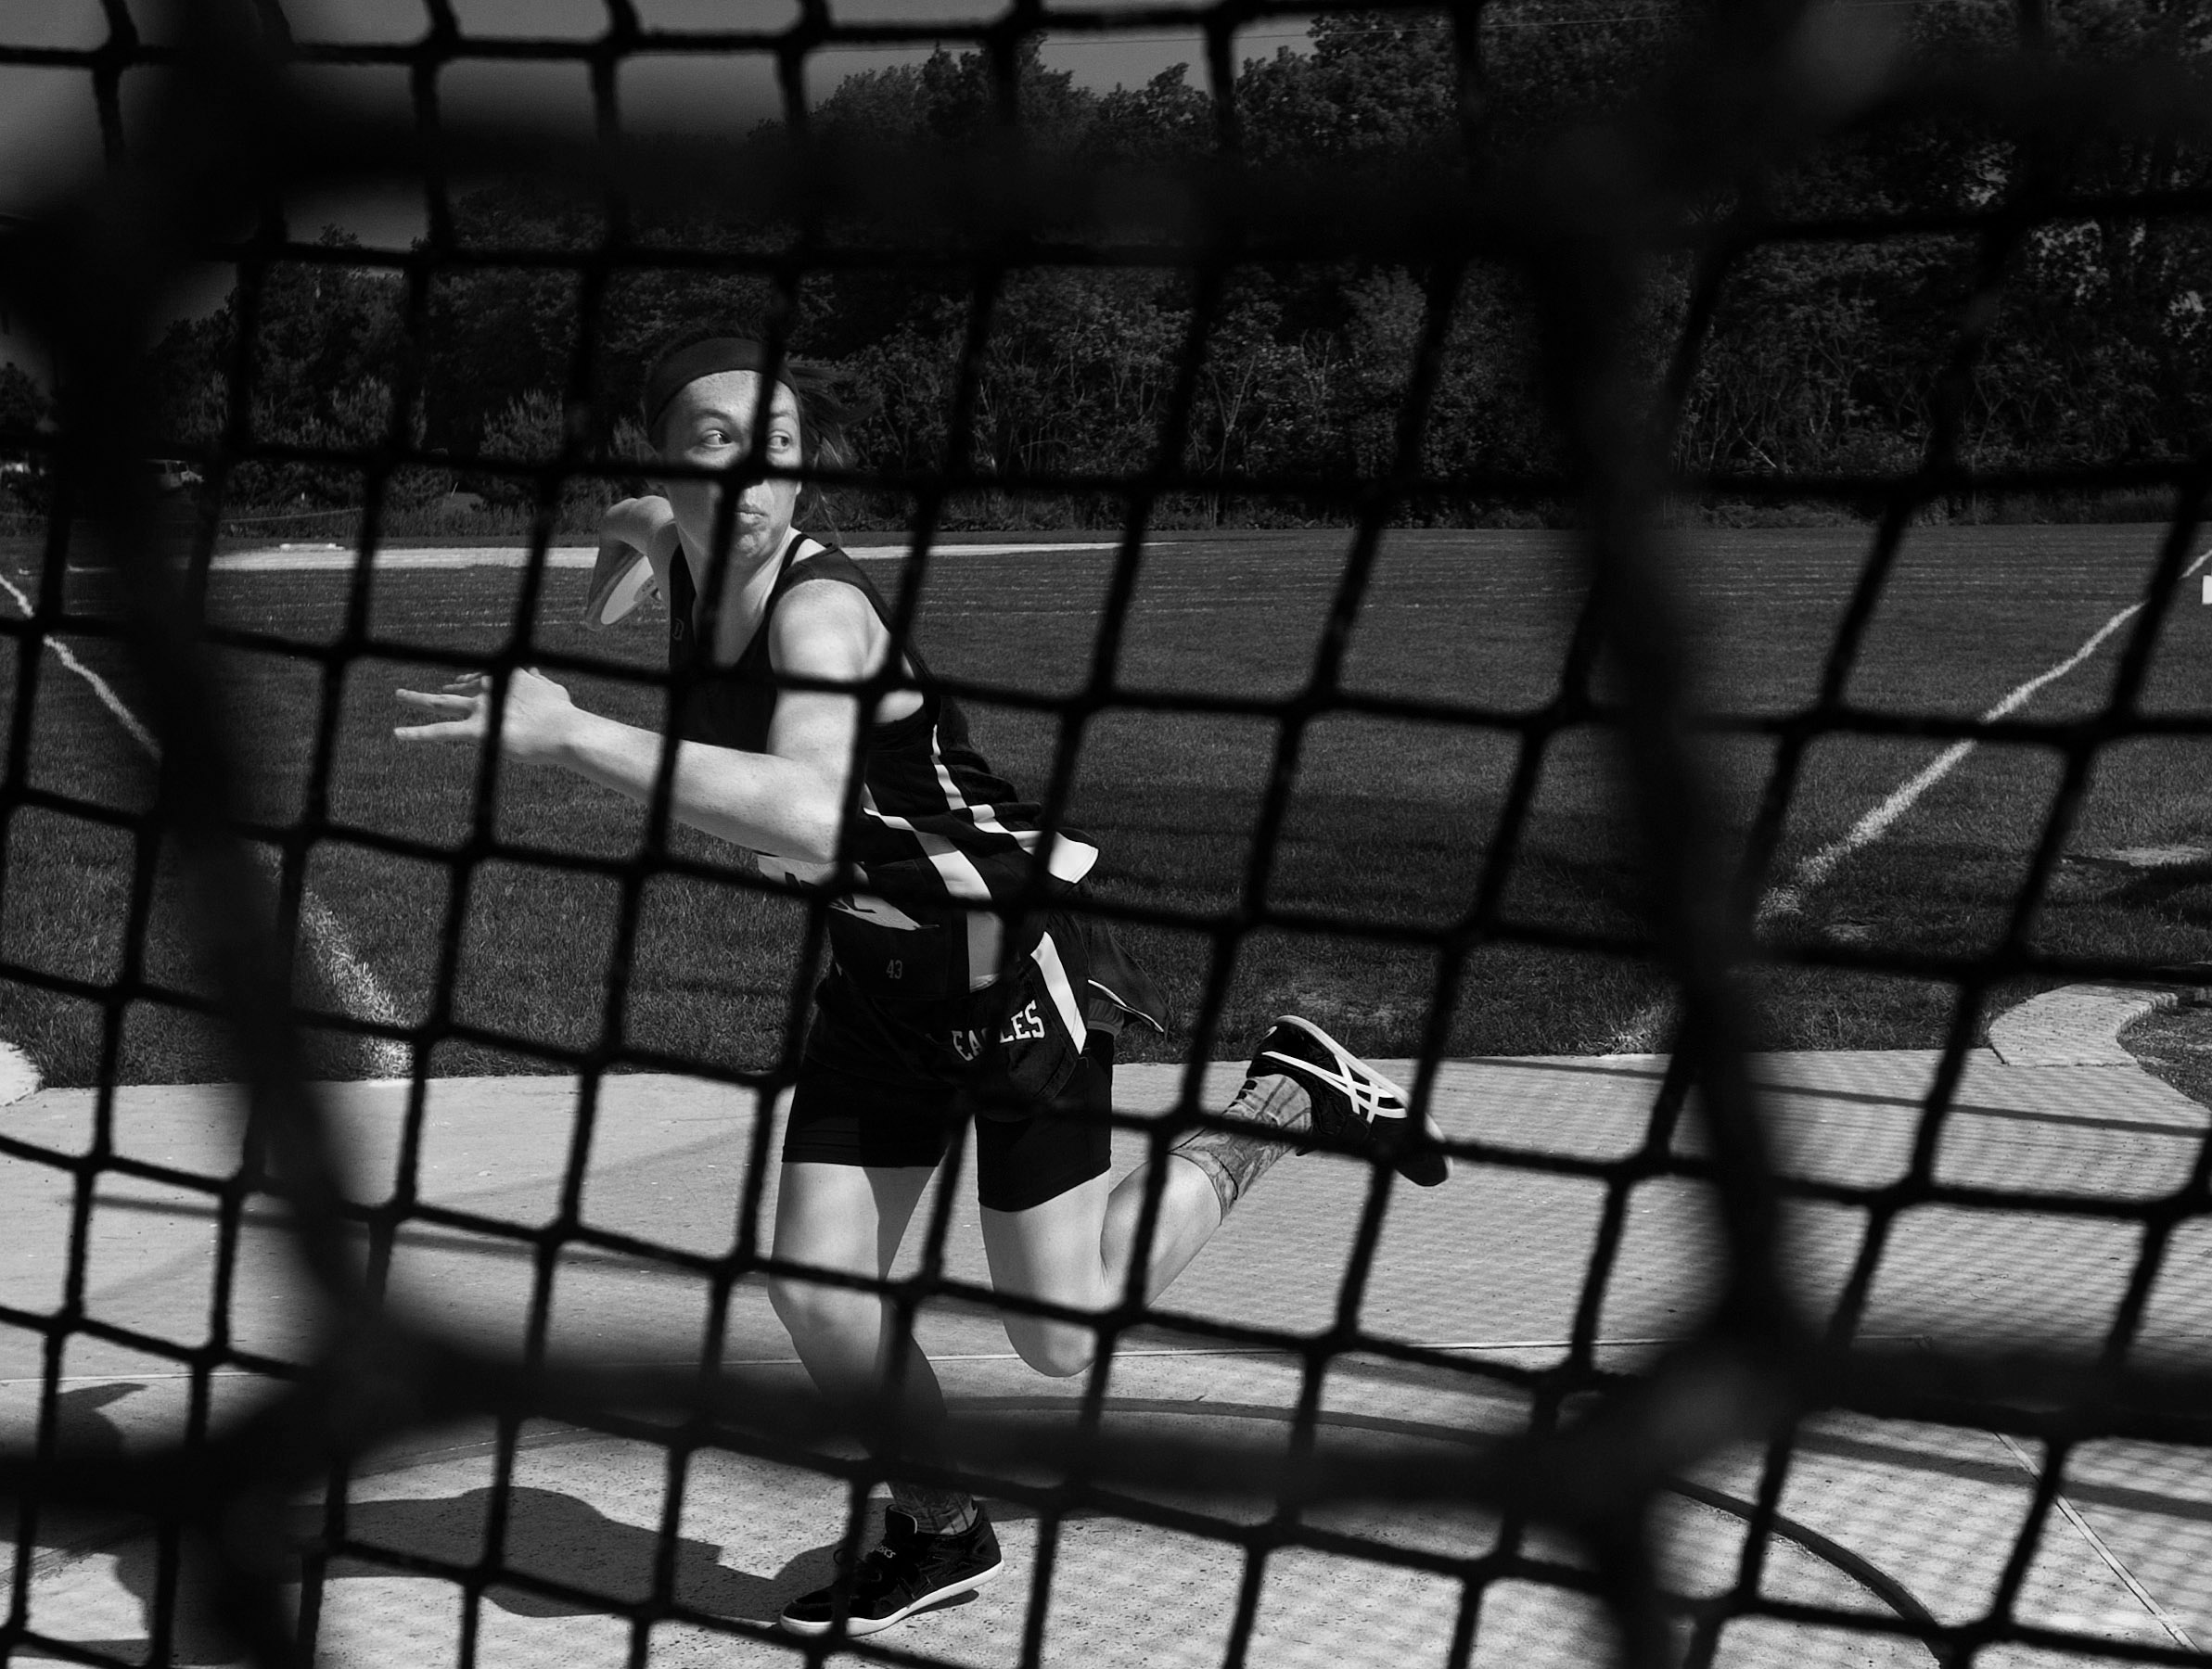 South Park's Maura Huwalt warms up her discus throw during the Class AA PIAA track and field championships at Shippensburg University on Friday, May 27, 2016 in Shippensburg.